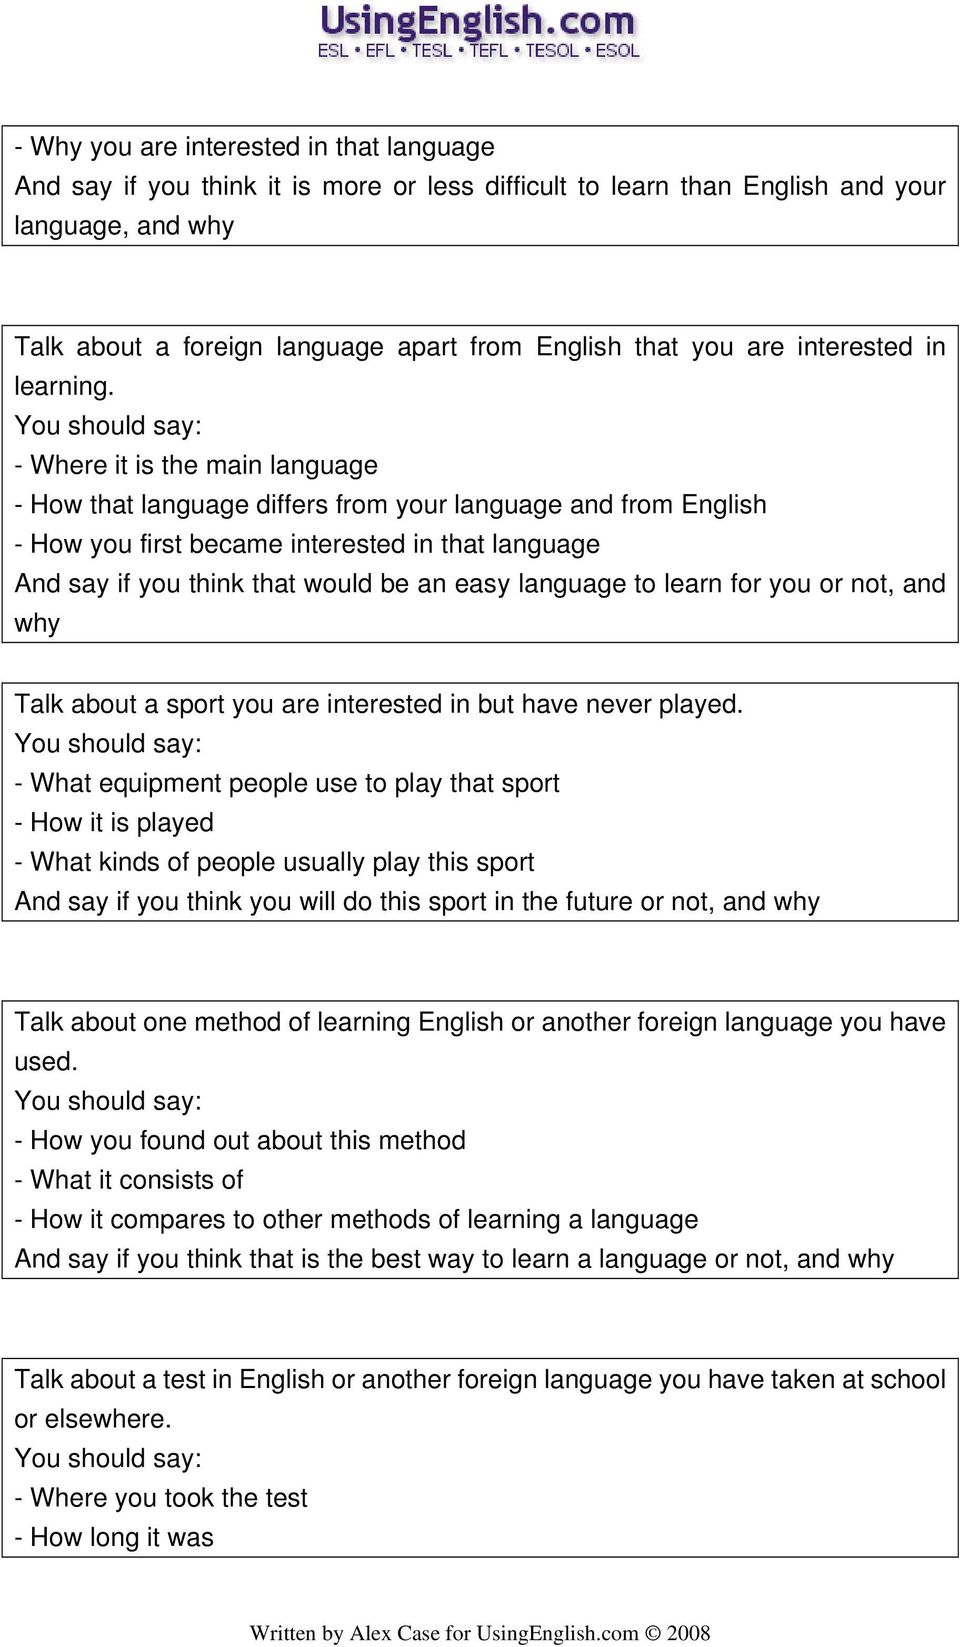 - Where it is the main language - How that language differs from your language and from English - How you first became interested in that language And say if you think that would be an easy language